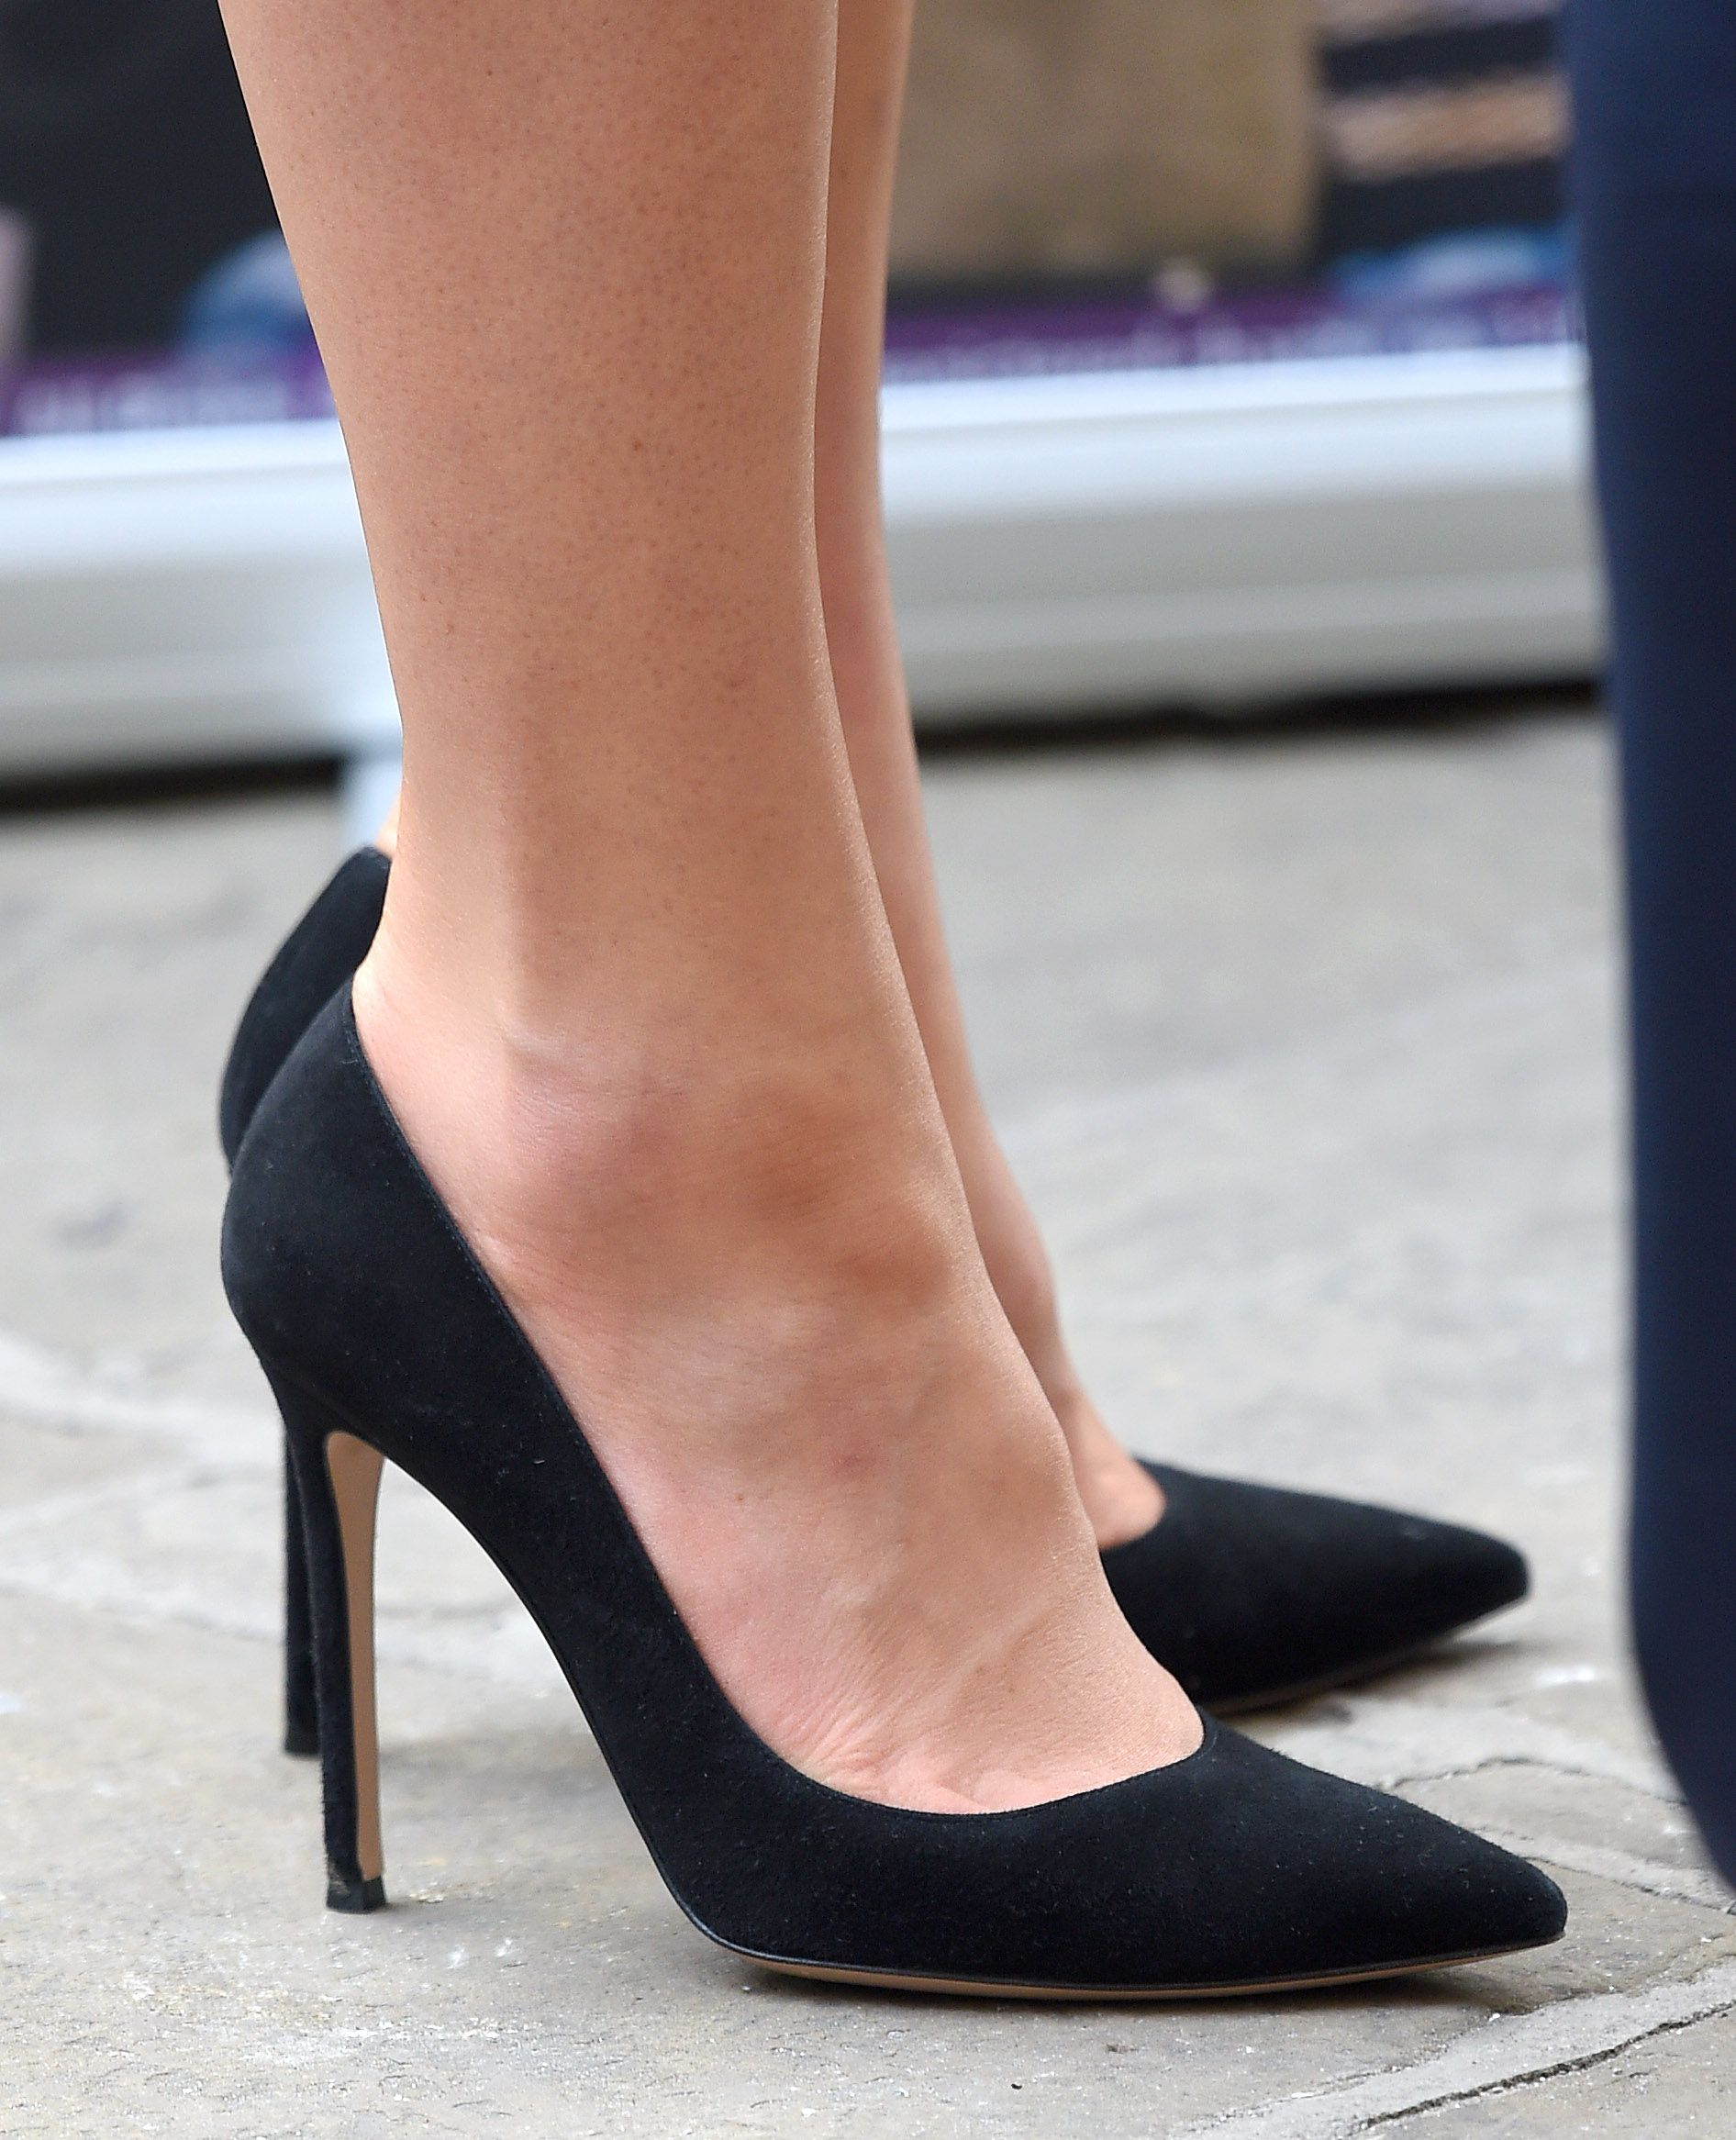 c37b85d19c9 Gianvito Rossi Gianvito pumps Kate Middleton Wedges